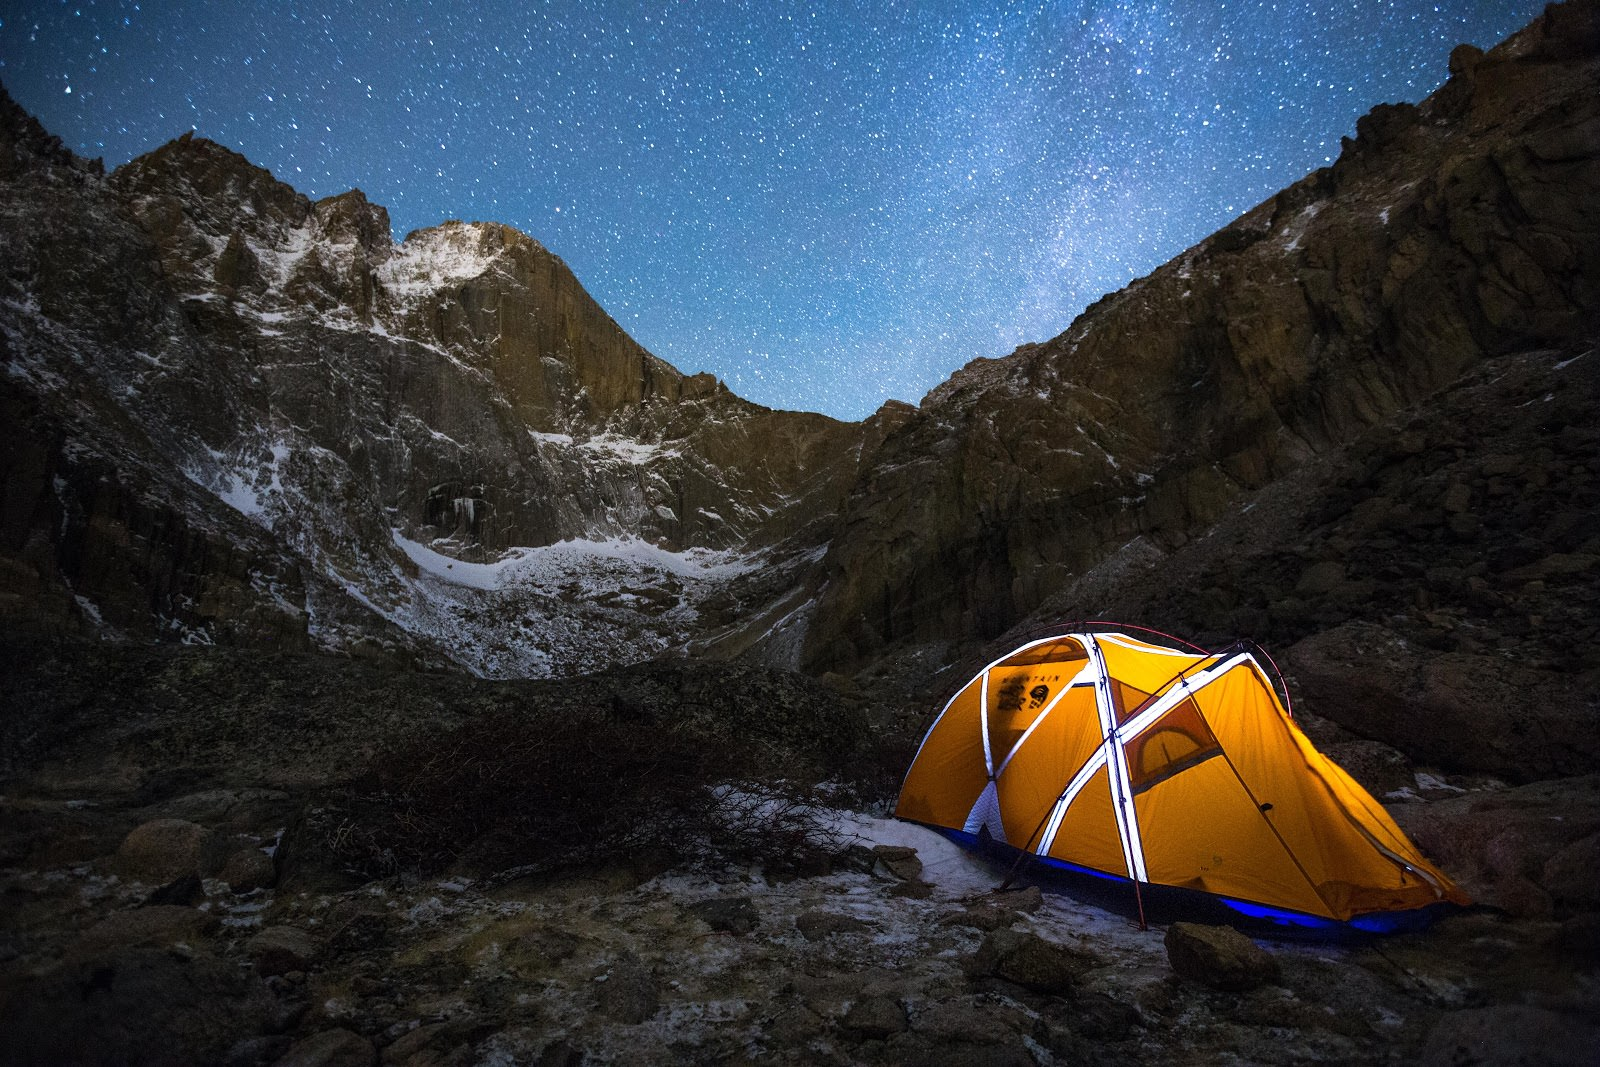 Camping at 11,800ft in the Rocky Mountains. Taken with Pulse. image